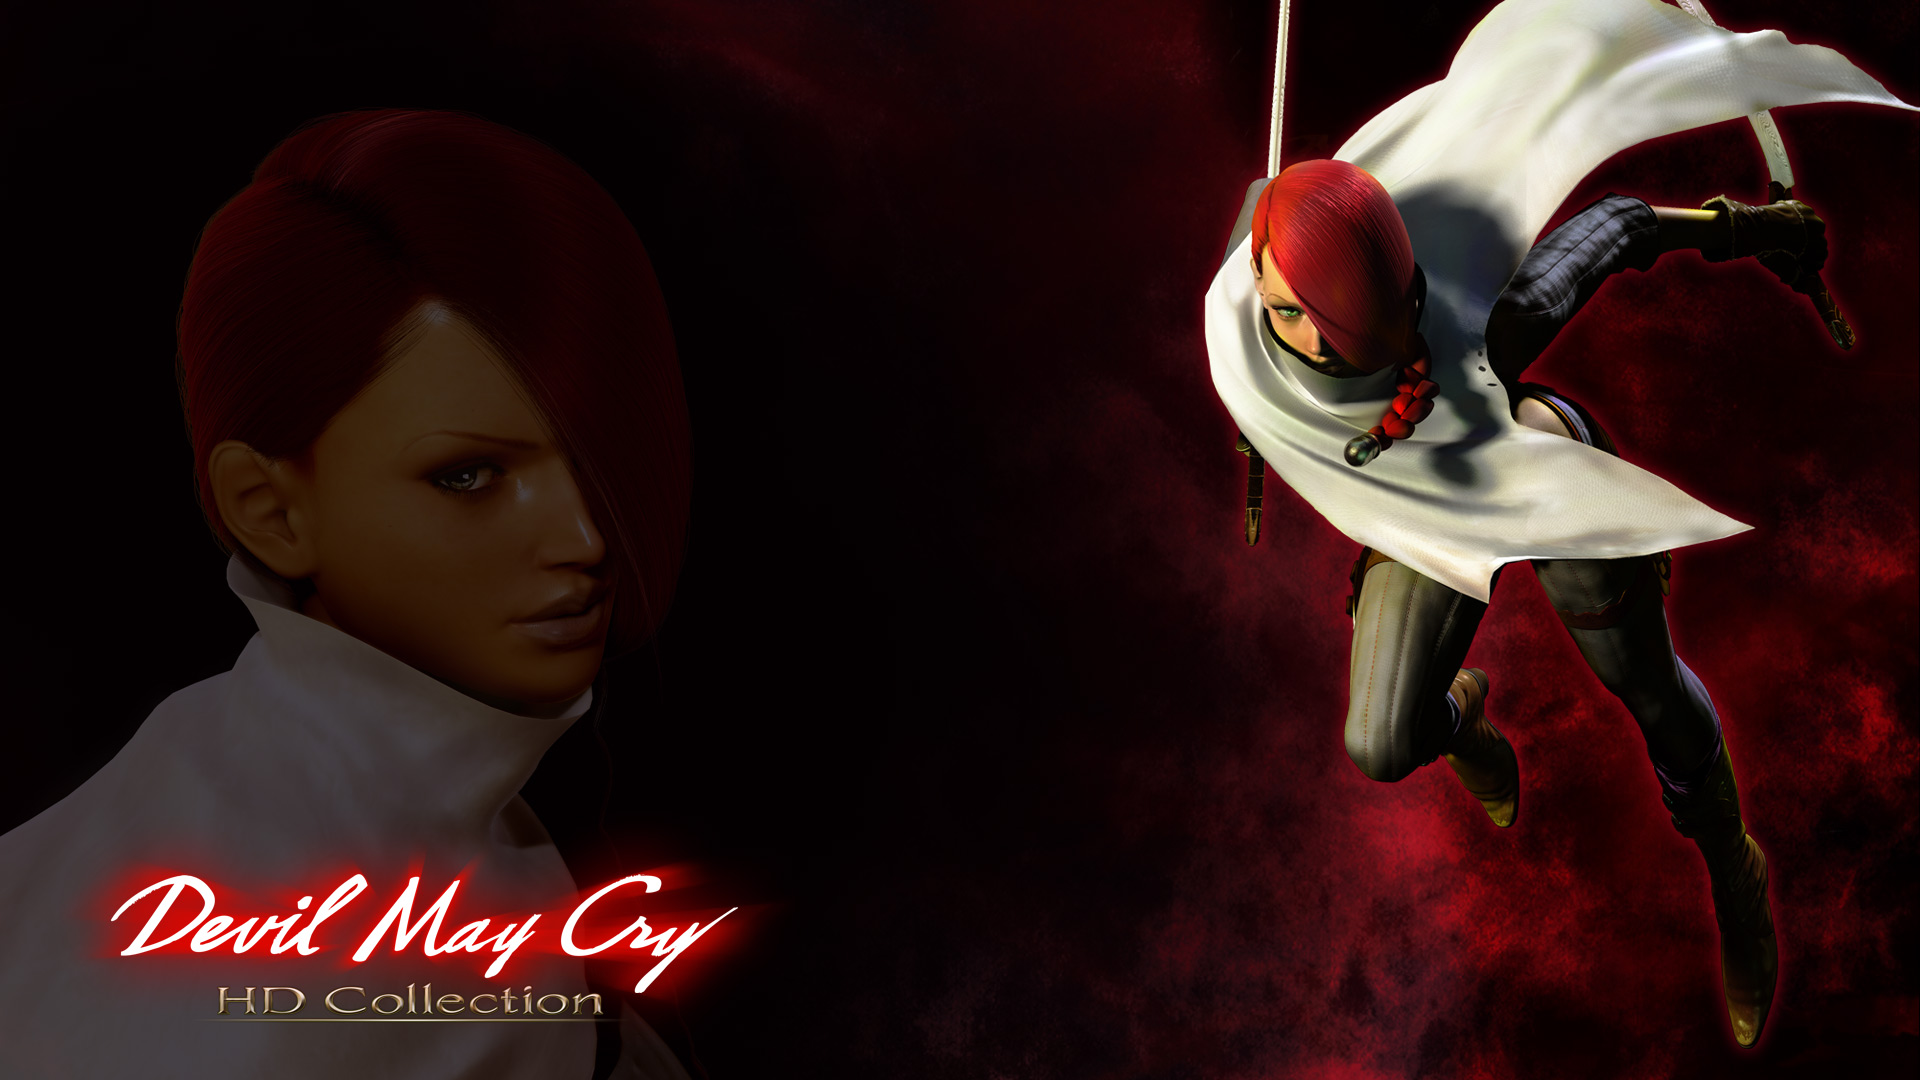 Dmc Lucia Devil May Cry Wallpaper 42706016 Fanpop Page 2